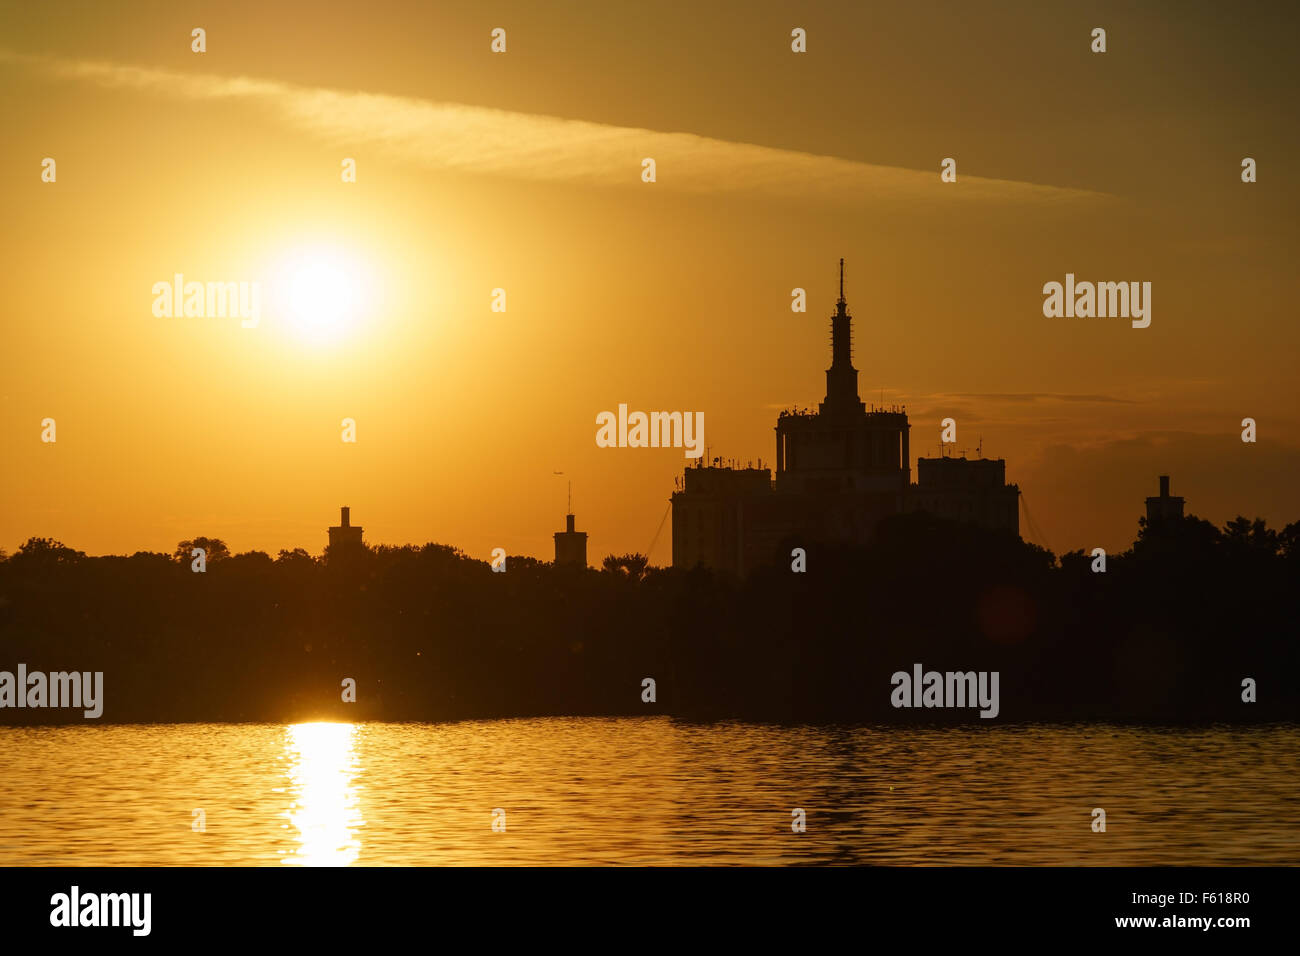 Sunset over Casa Sciintei and the lake at Herastrau Park in Bucharest, Romania. - Stock Image